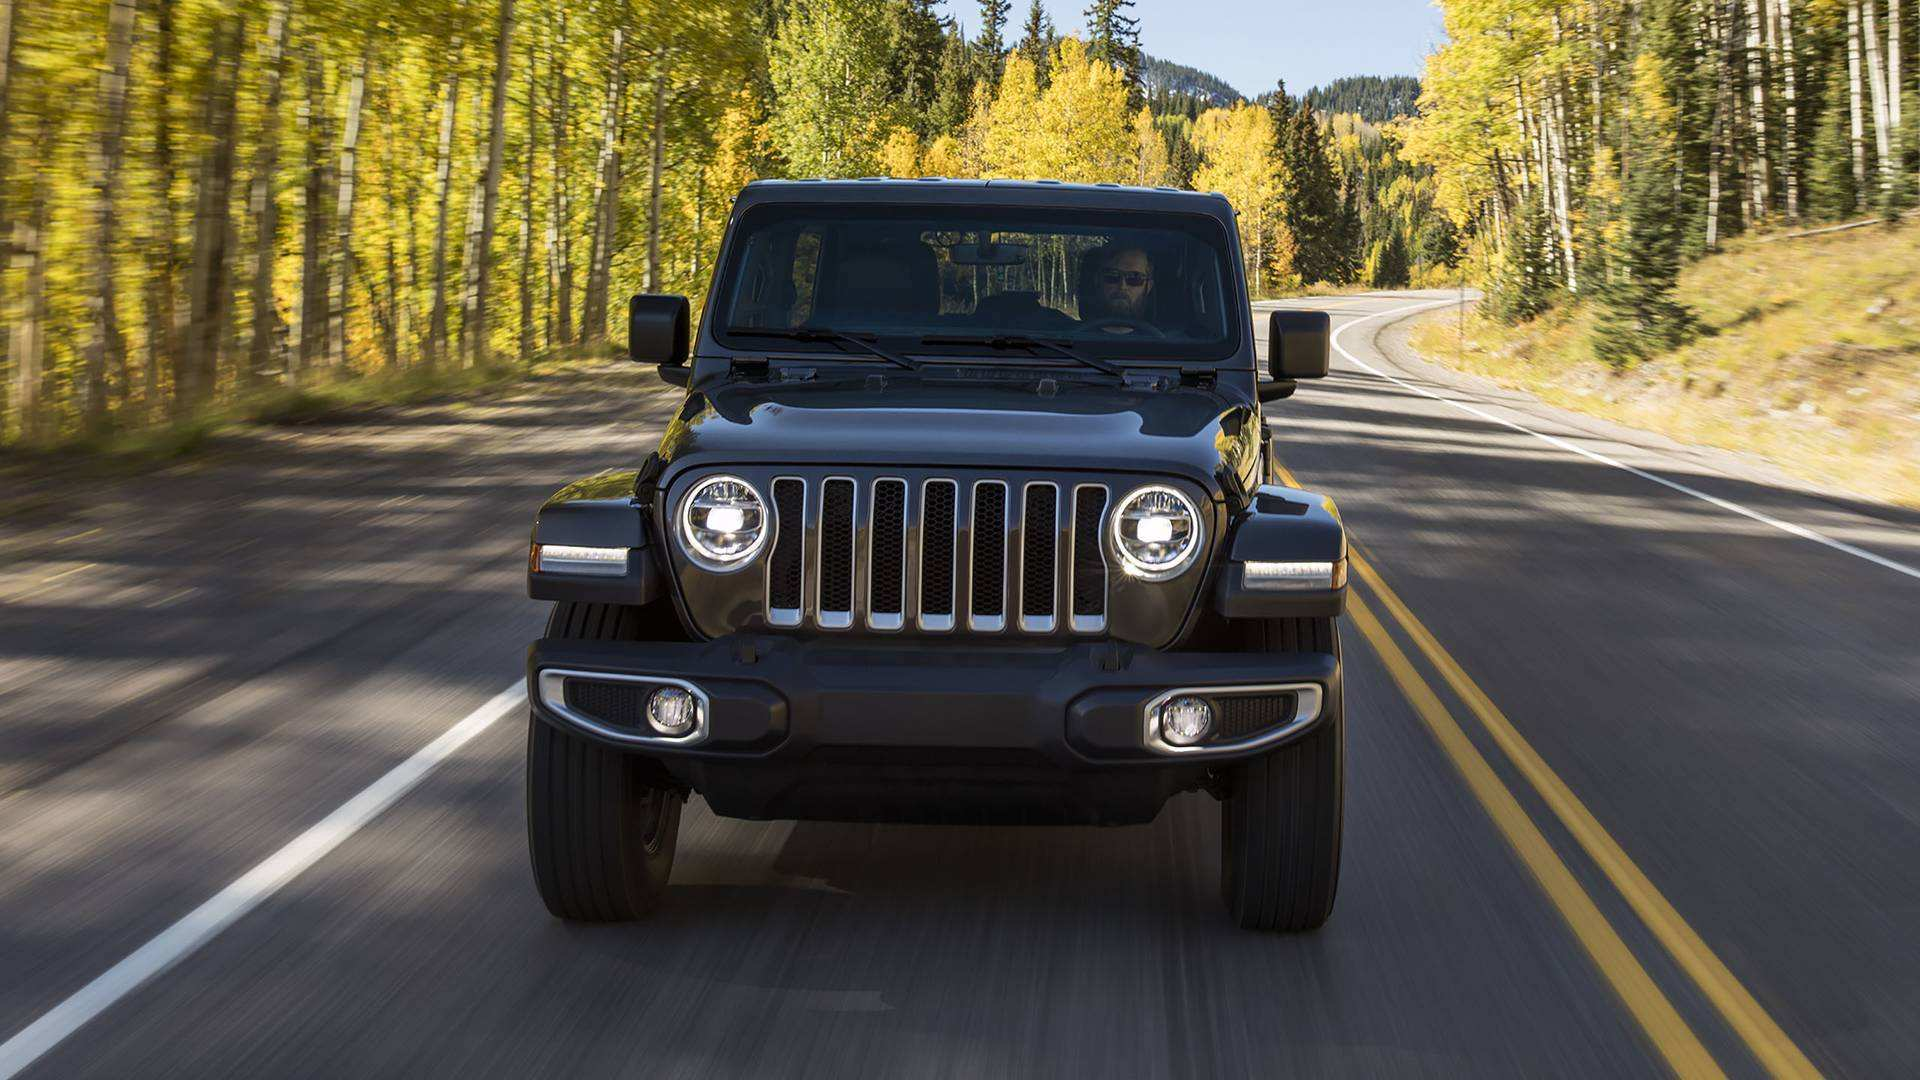 59 New Best Jeep 2019 Orders Price And Release Date Engine for Best Jeep 2019 Orders Price And Release Date